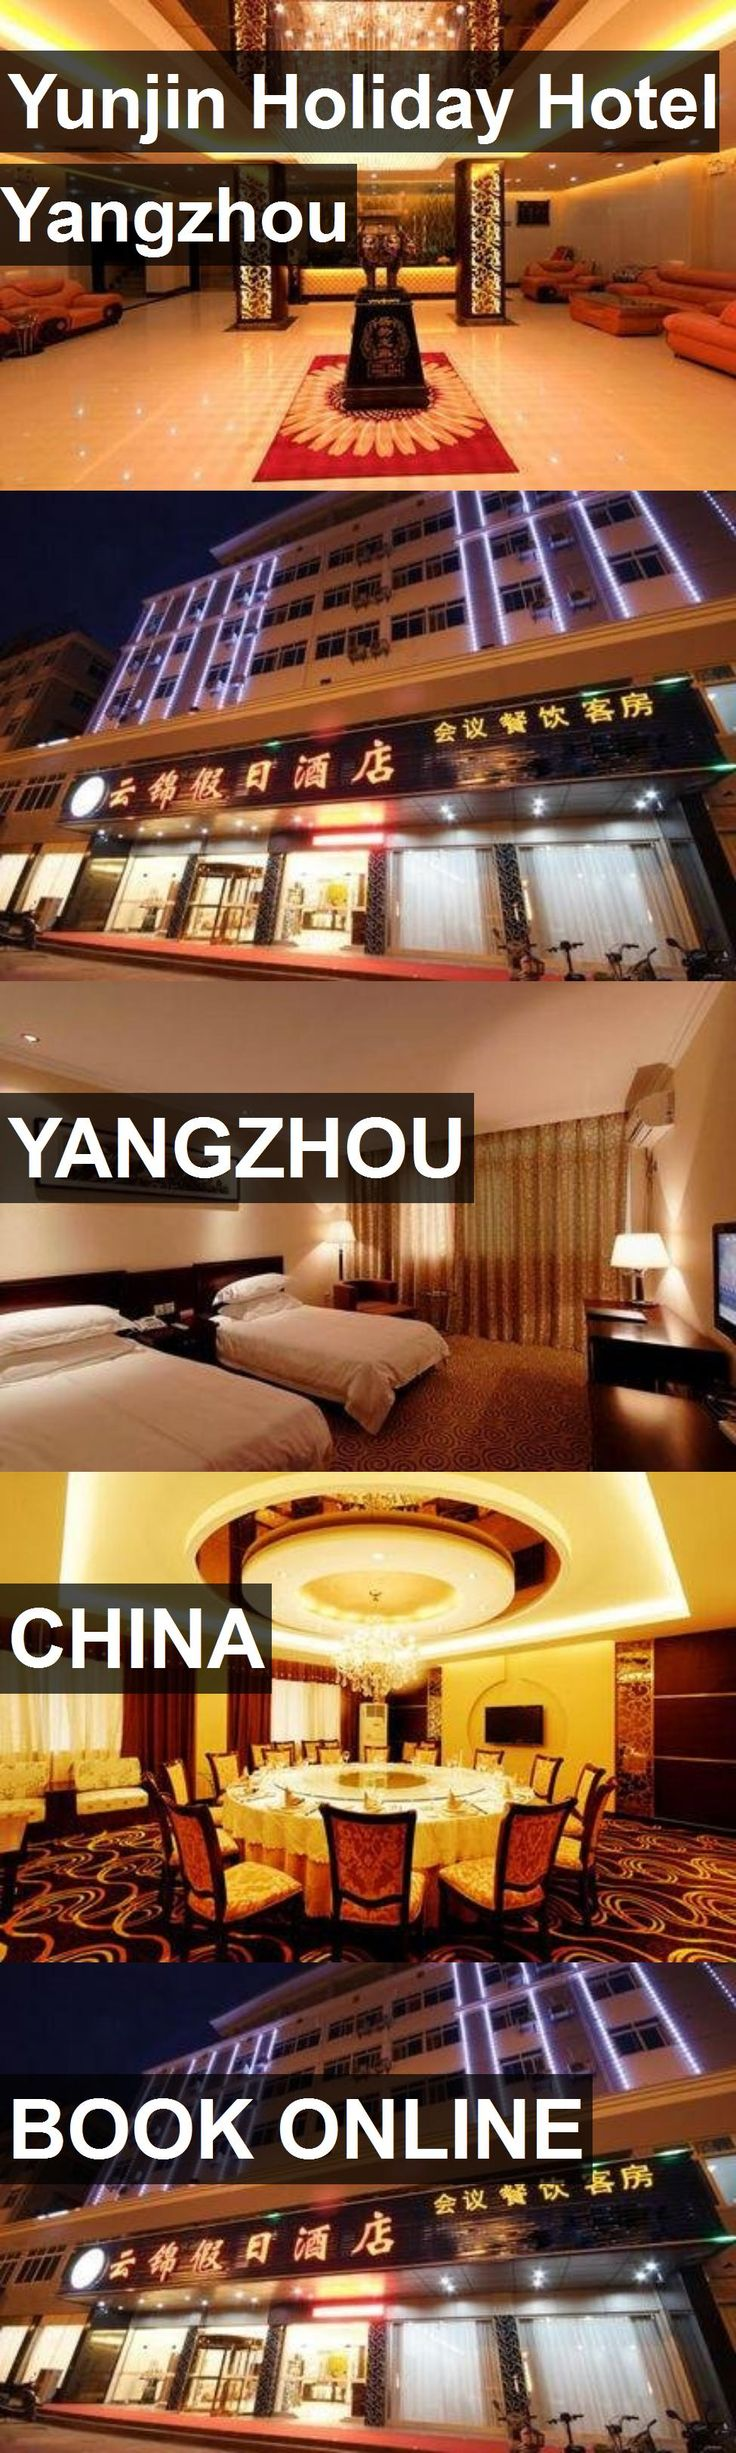 Yunjin Holiday Hotel Yangzhou in Yangzhou, China. For more information, photos, reviews and best prices please follow the link. #China #Yangzhou #travel #vacation #hotel